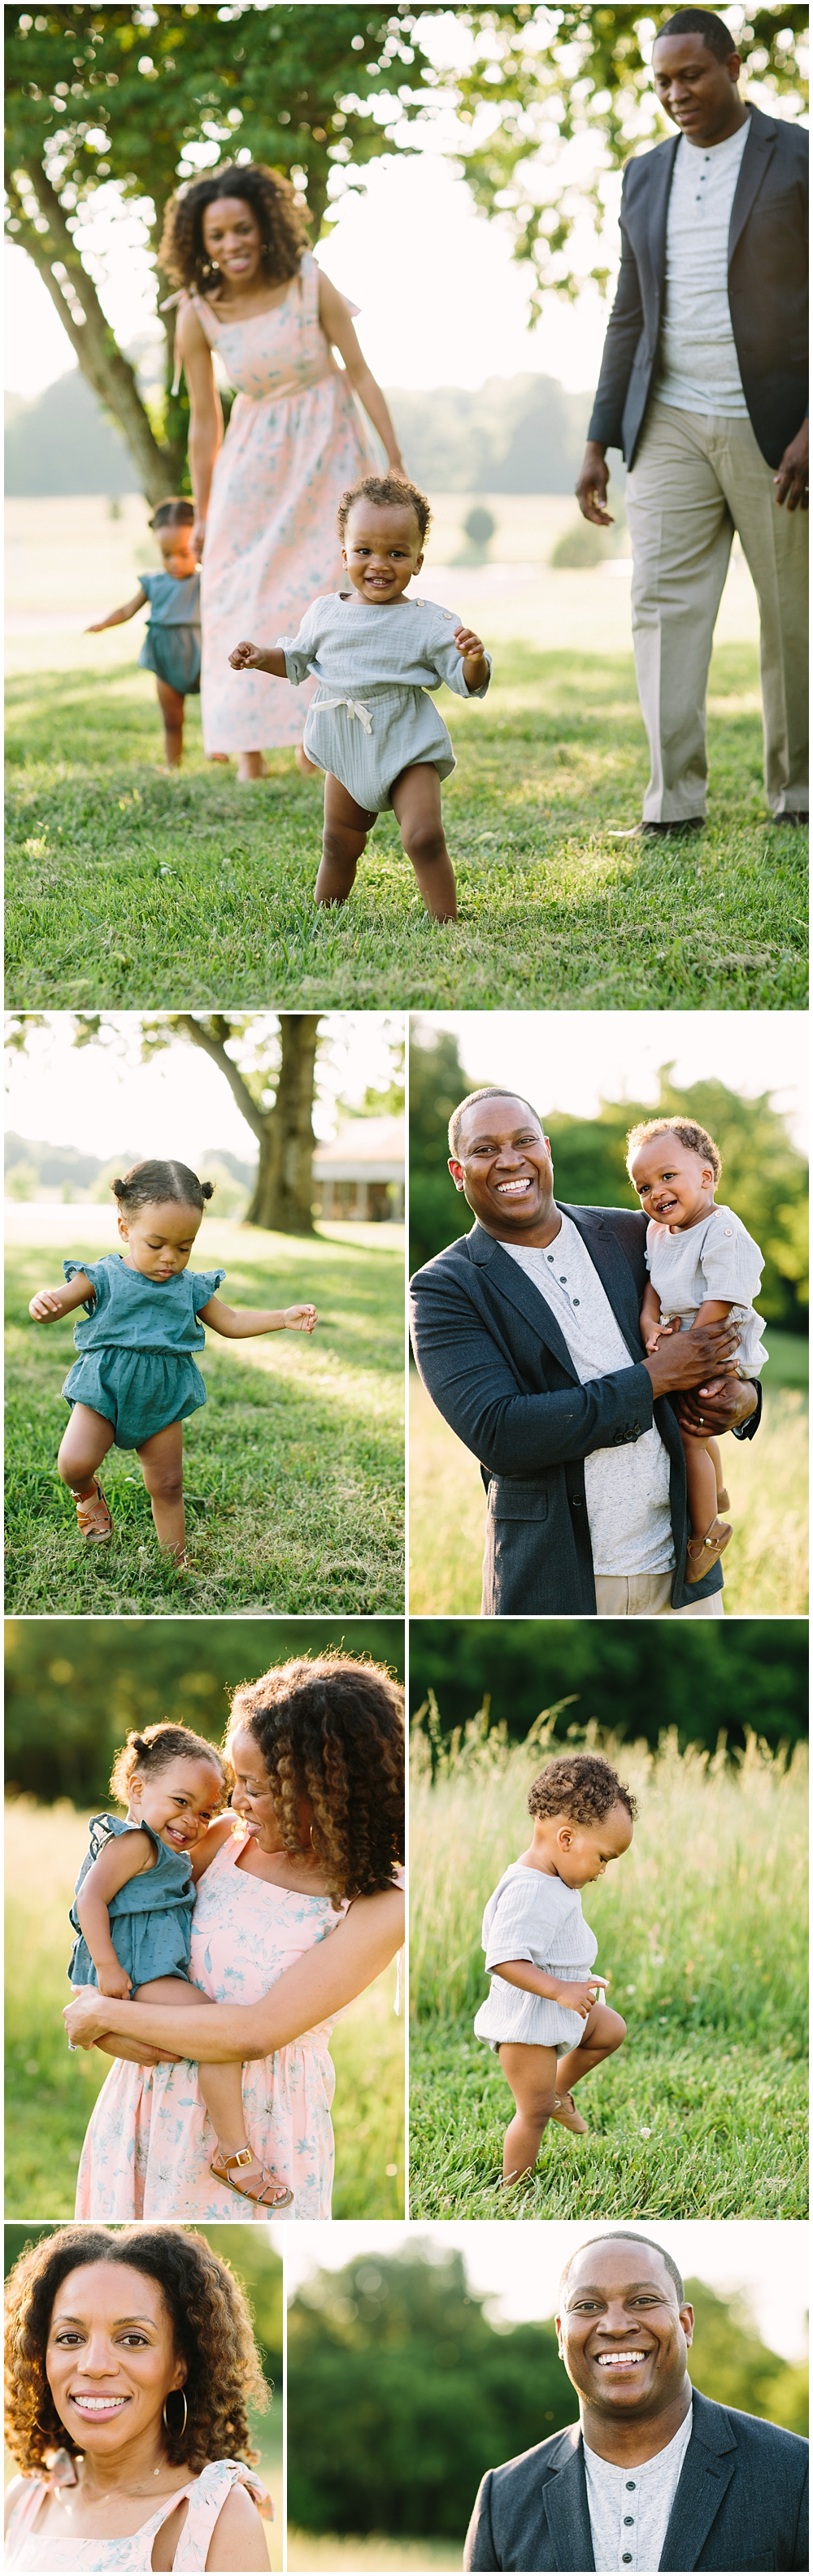 Franklin Family Photographer Rachel Moore Photography